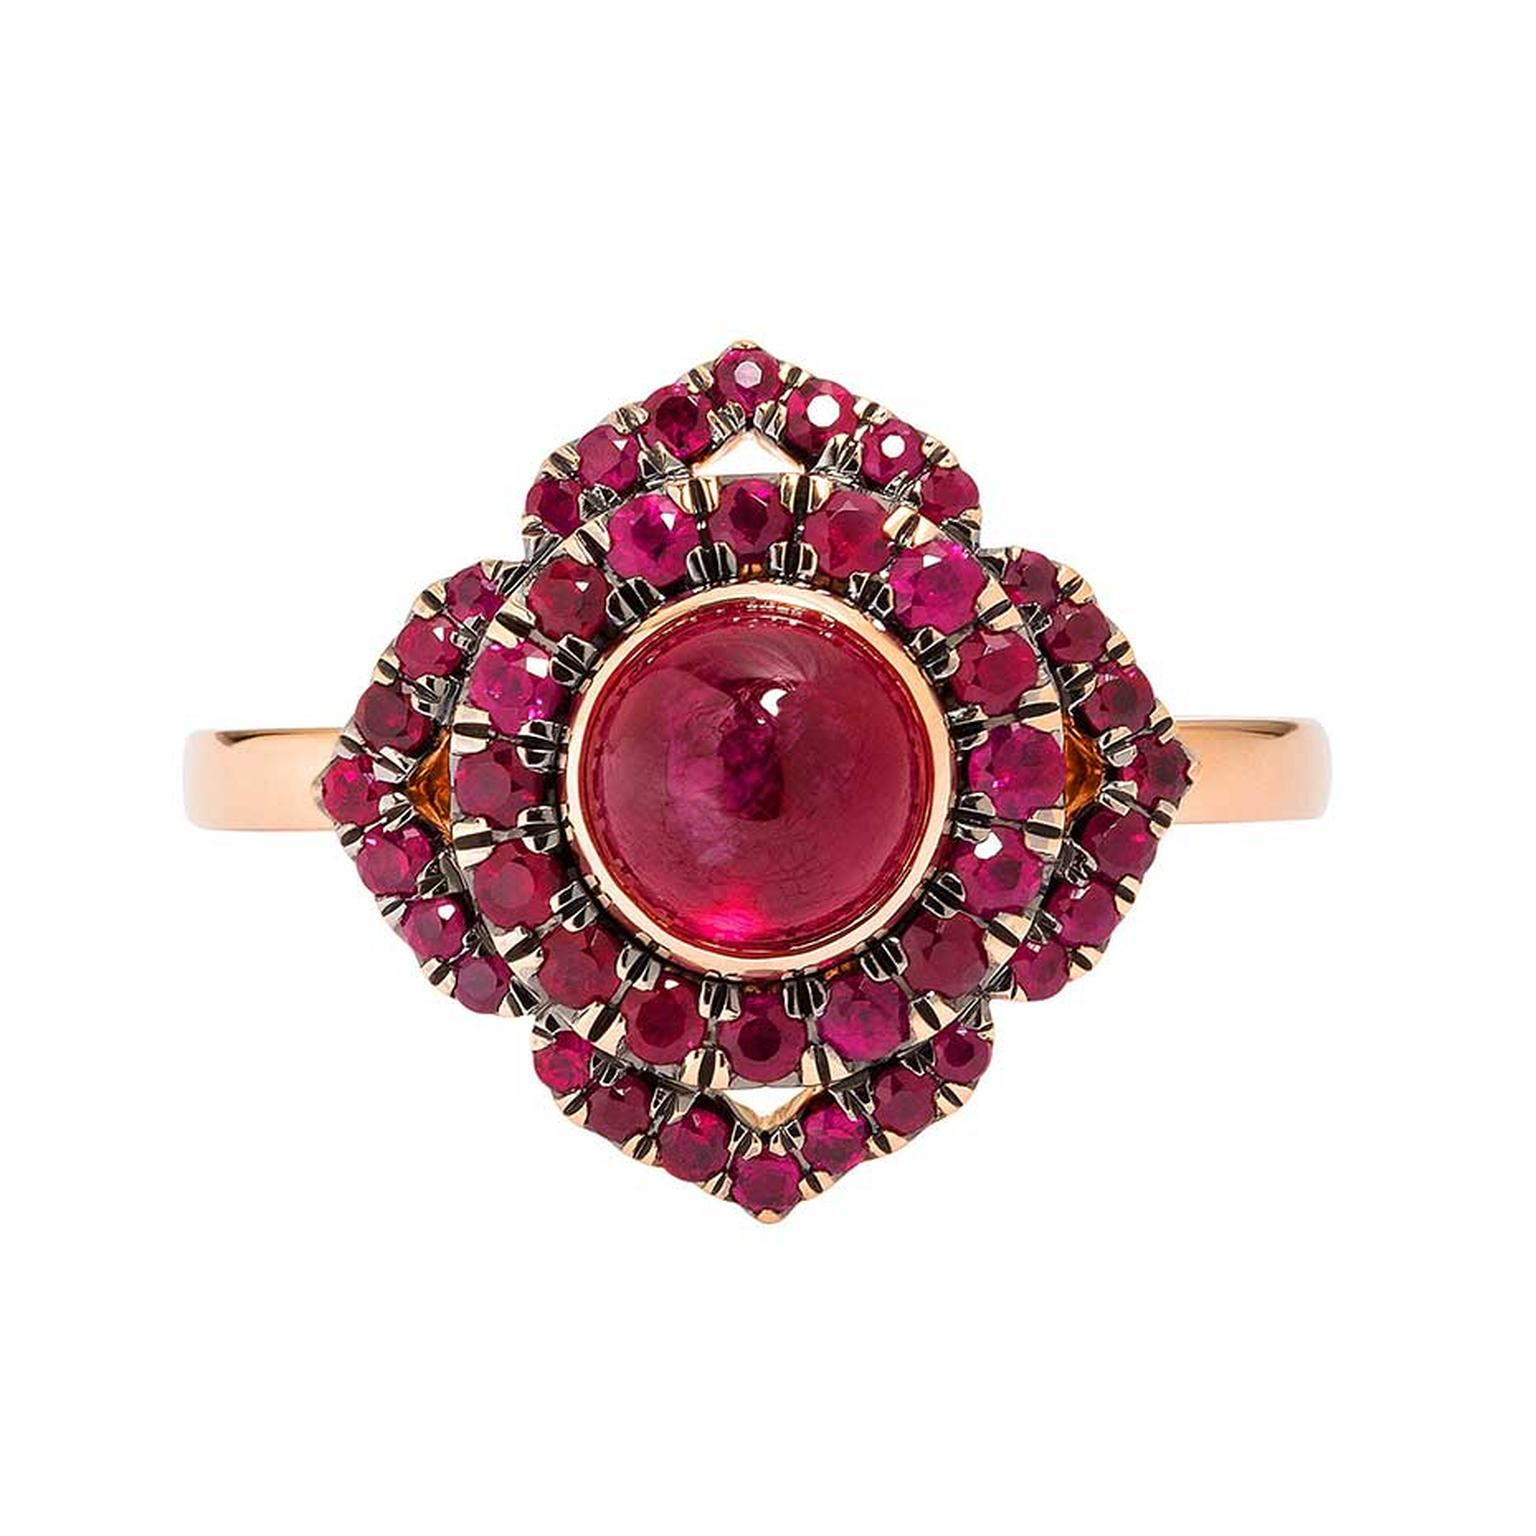 Vanessa Kandiyoti Chakra rose gold ring with a cabochon ruby and pavé rubies.